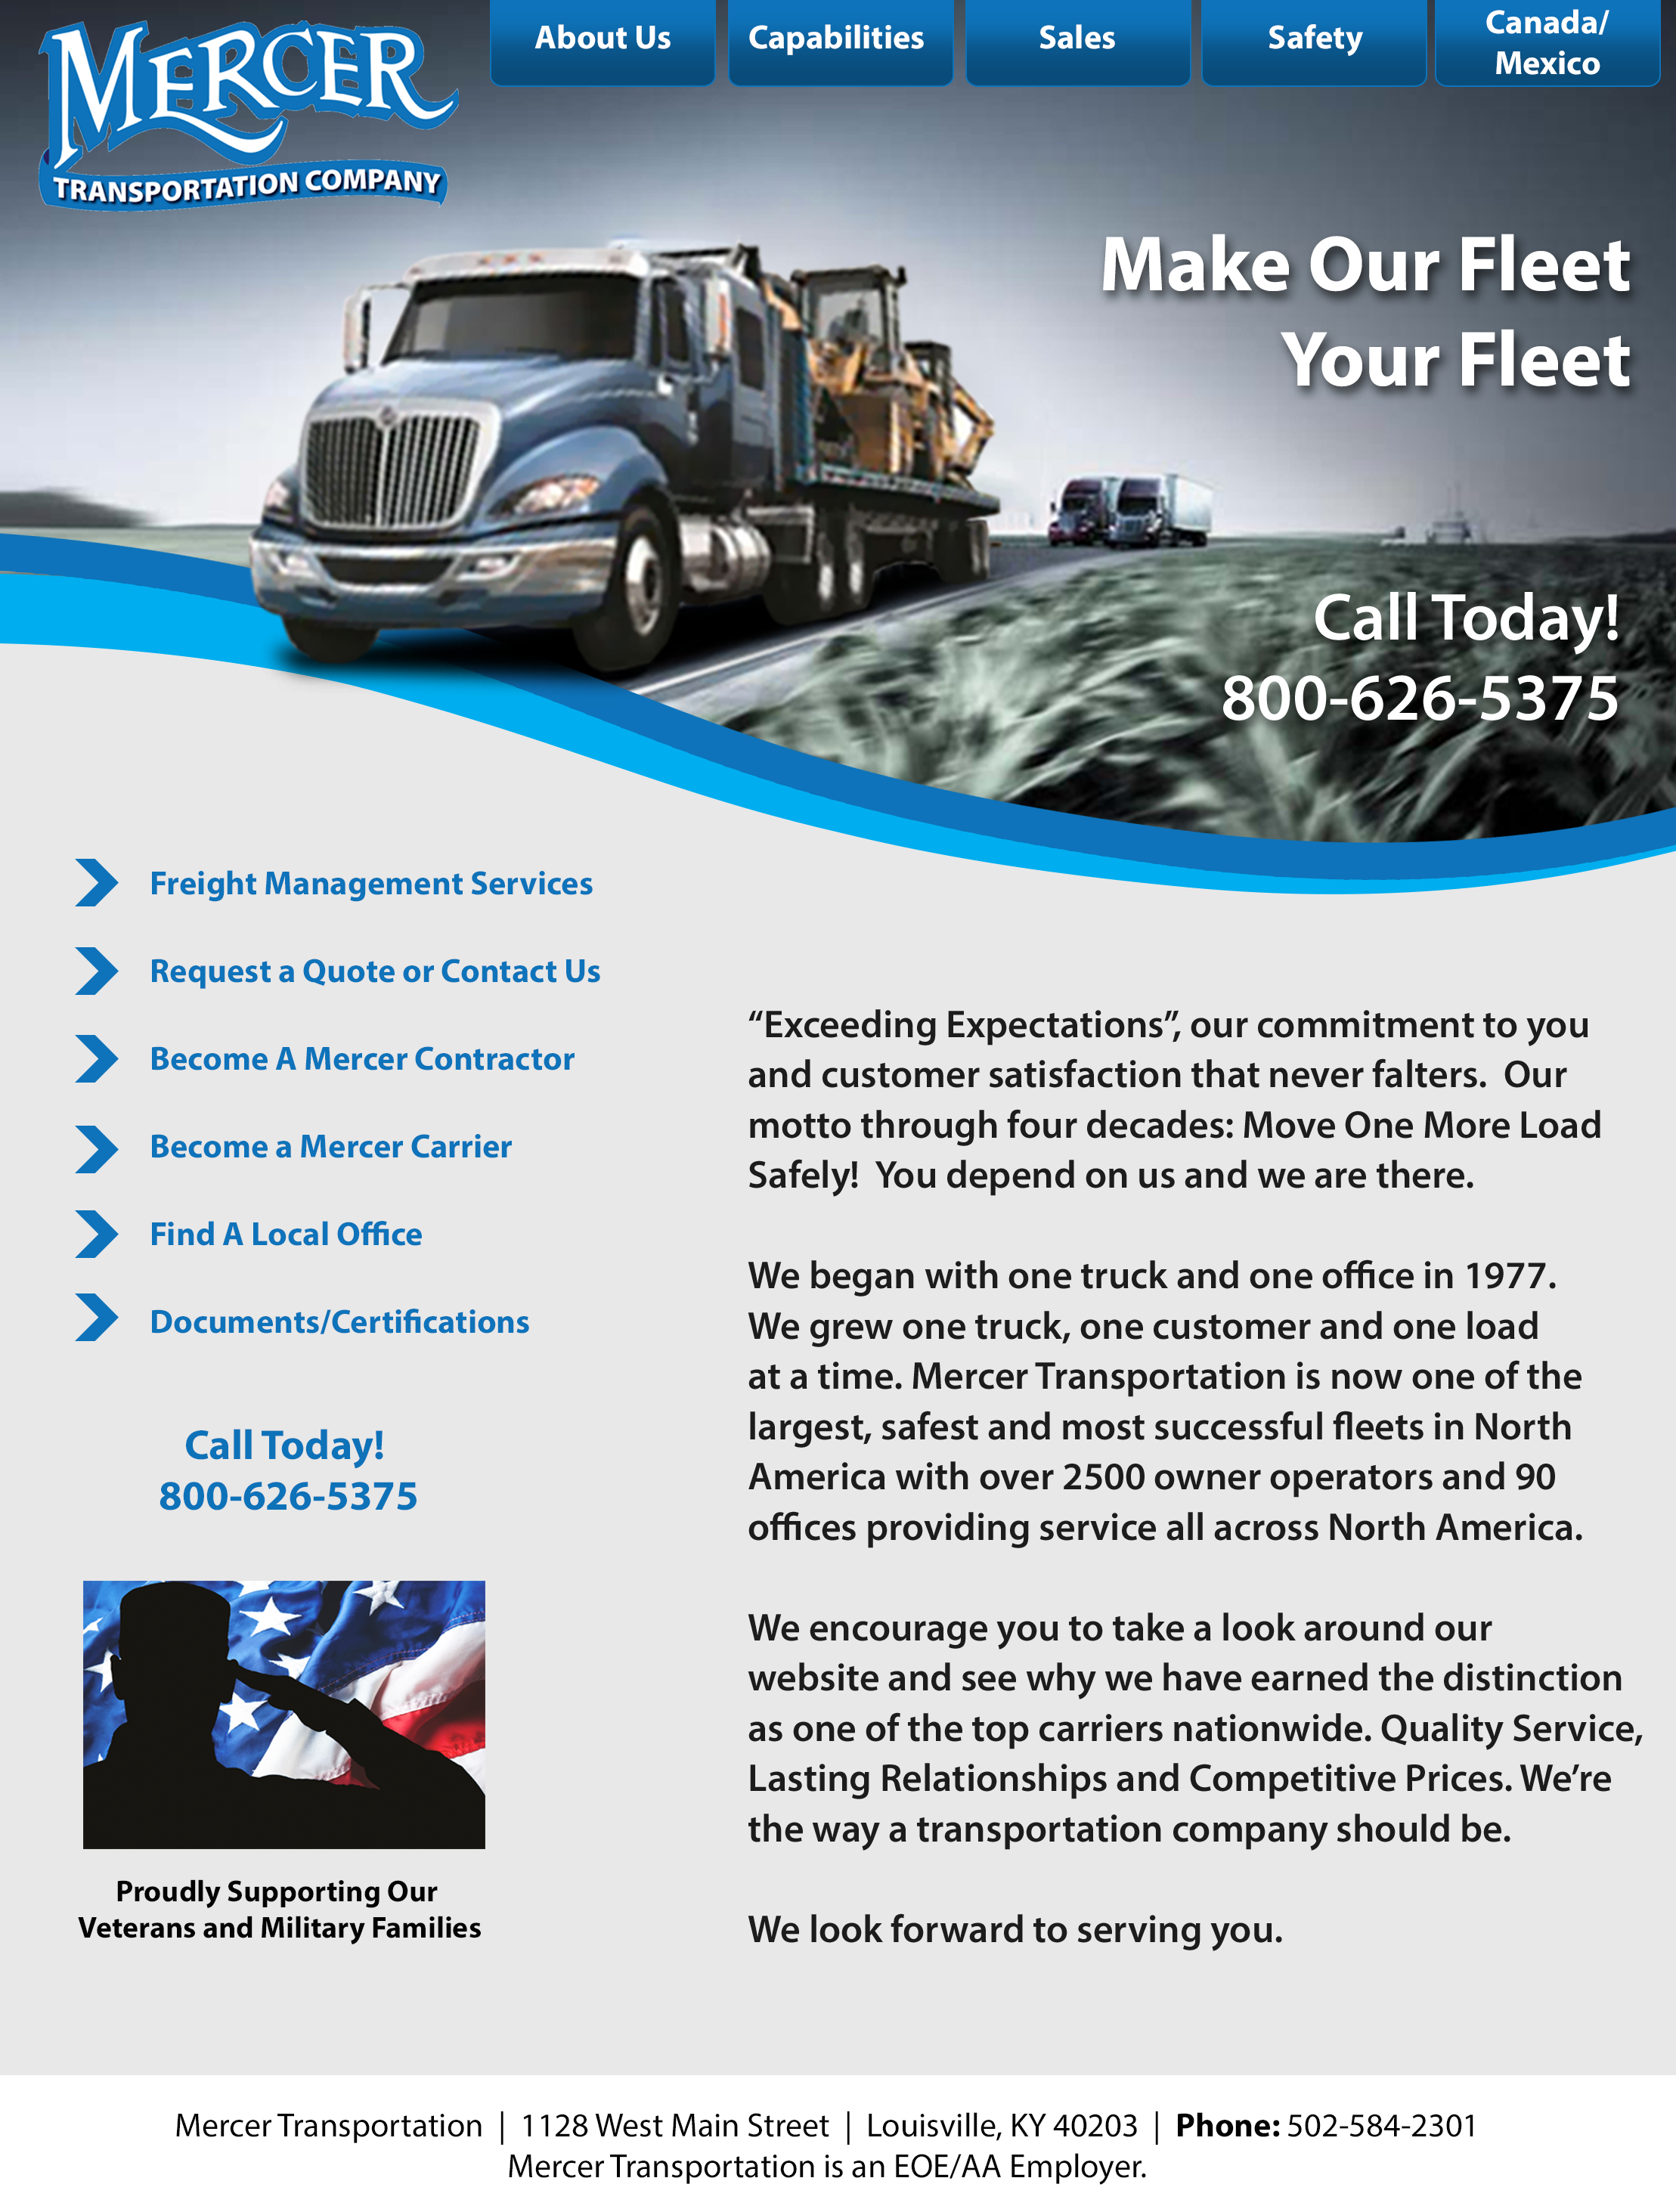 Website design originally created for Mercer Transportation to recruit drivers.